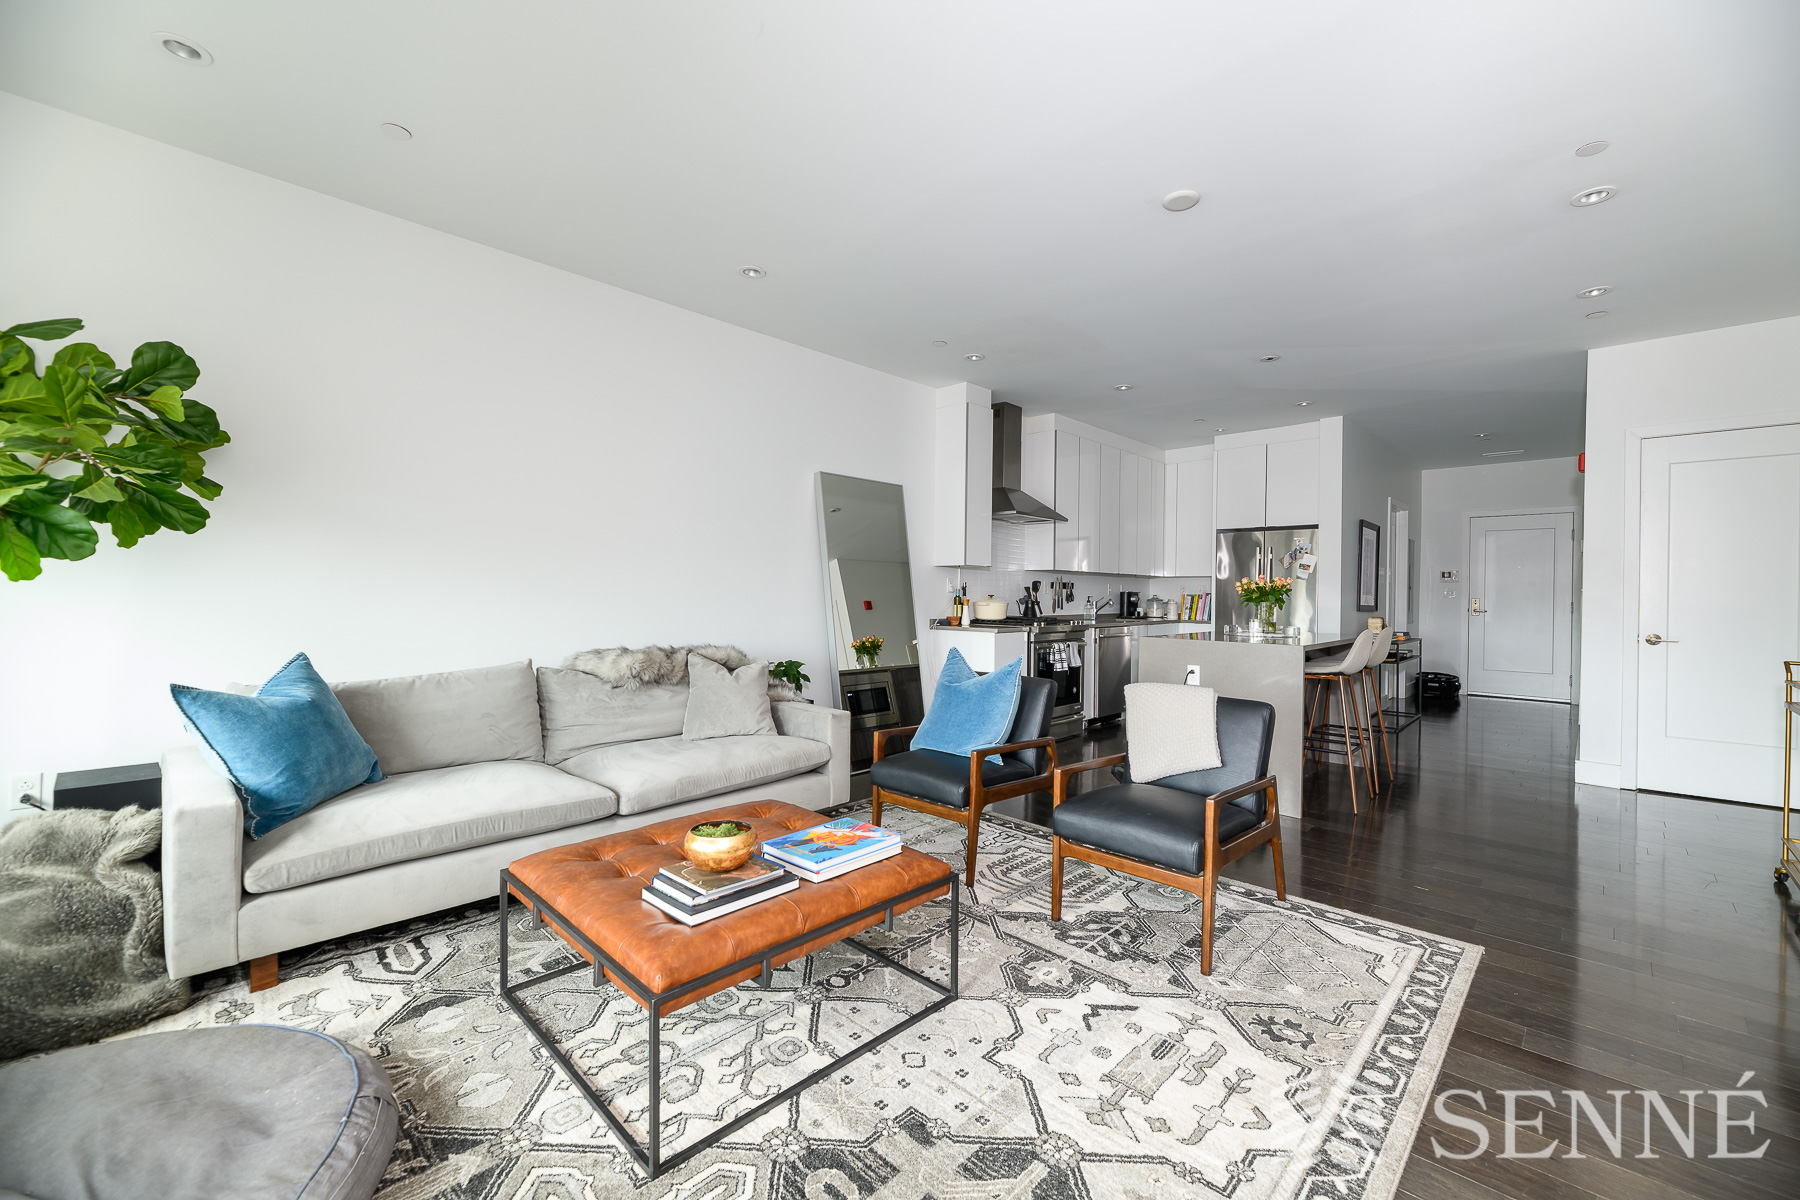 2 Beds, 1 Bath apartment in Boston, South Boston for $3,600